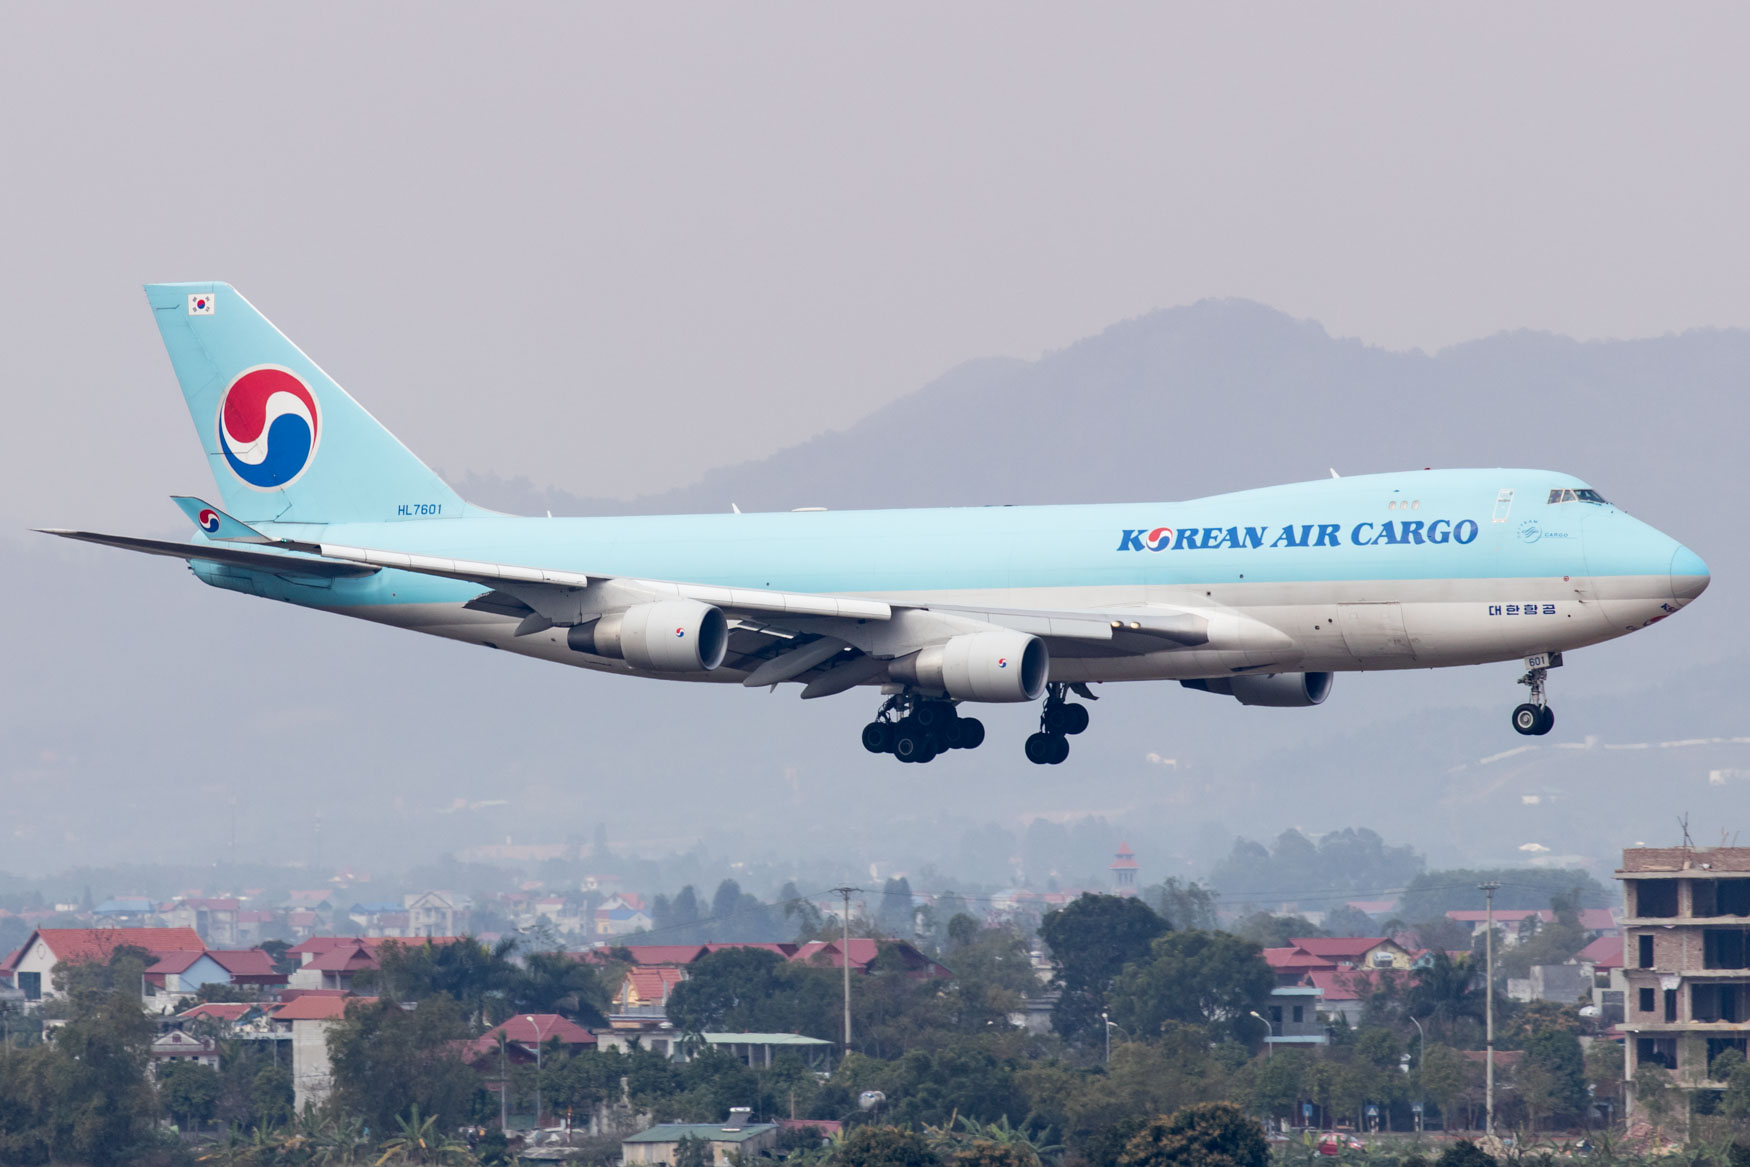 Korean Air Cargo 747 at Hanoi Airport